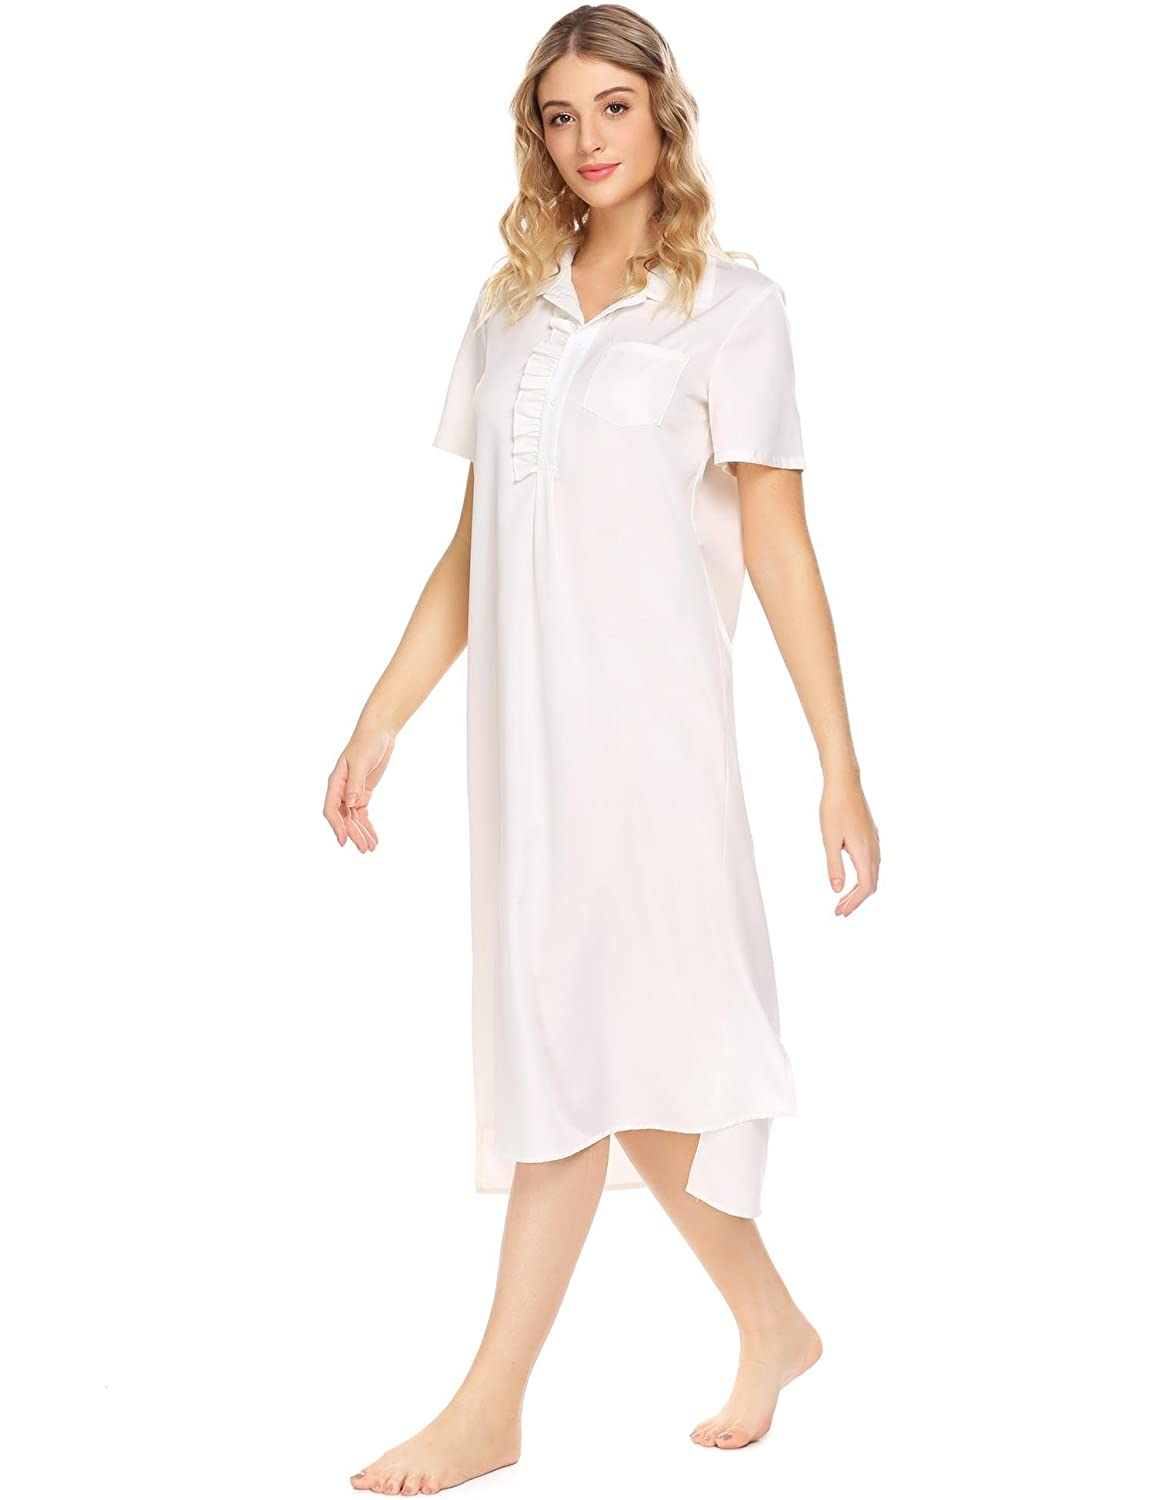 1b0c3e4c58 Ekouaer Women s Cotton Victorian Vintage Lace Long Nightgown Sleepwear